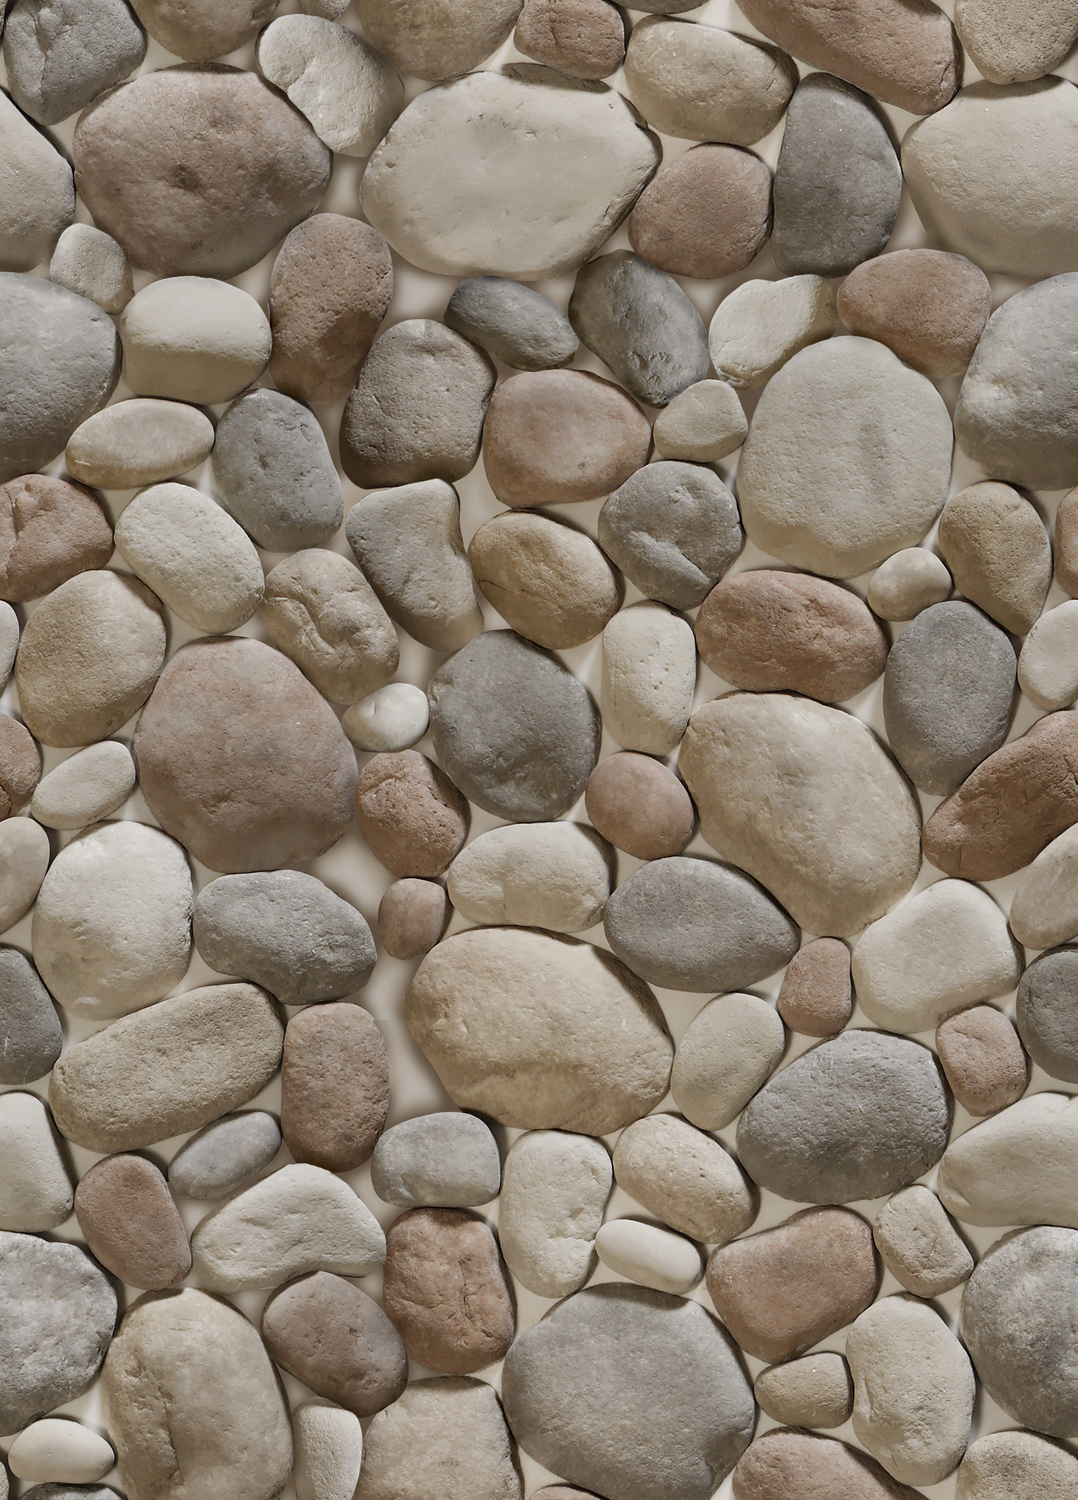 texture bridge, stone, download background, background